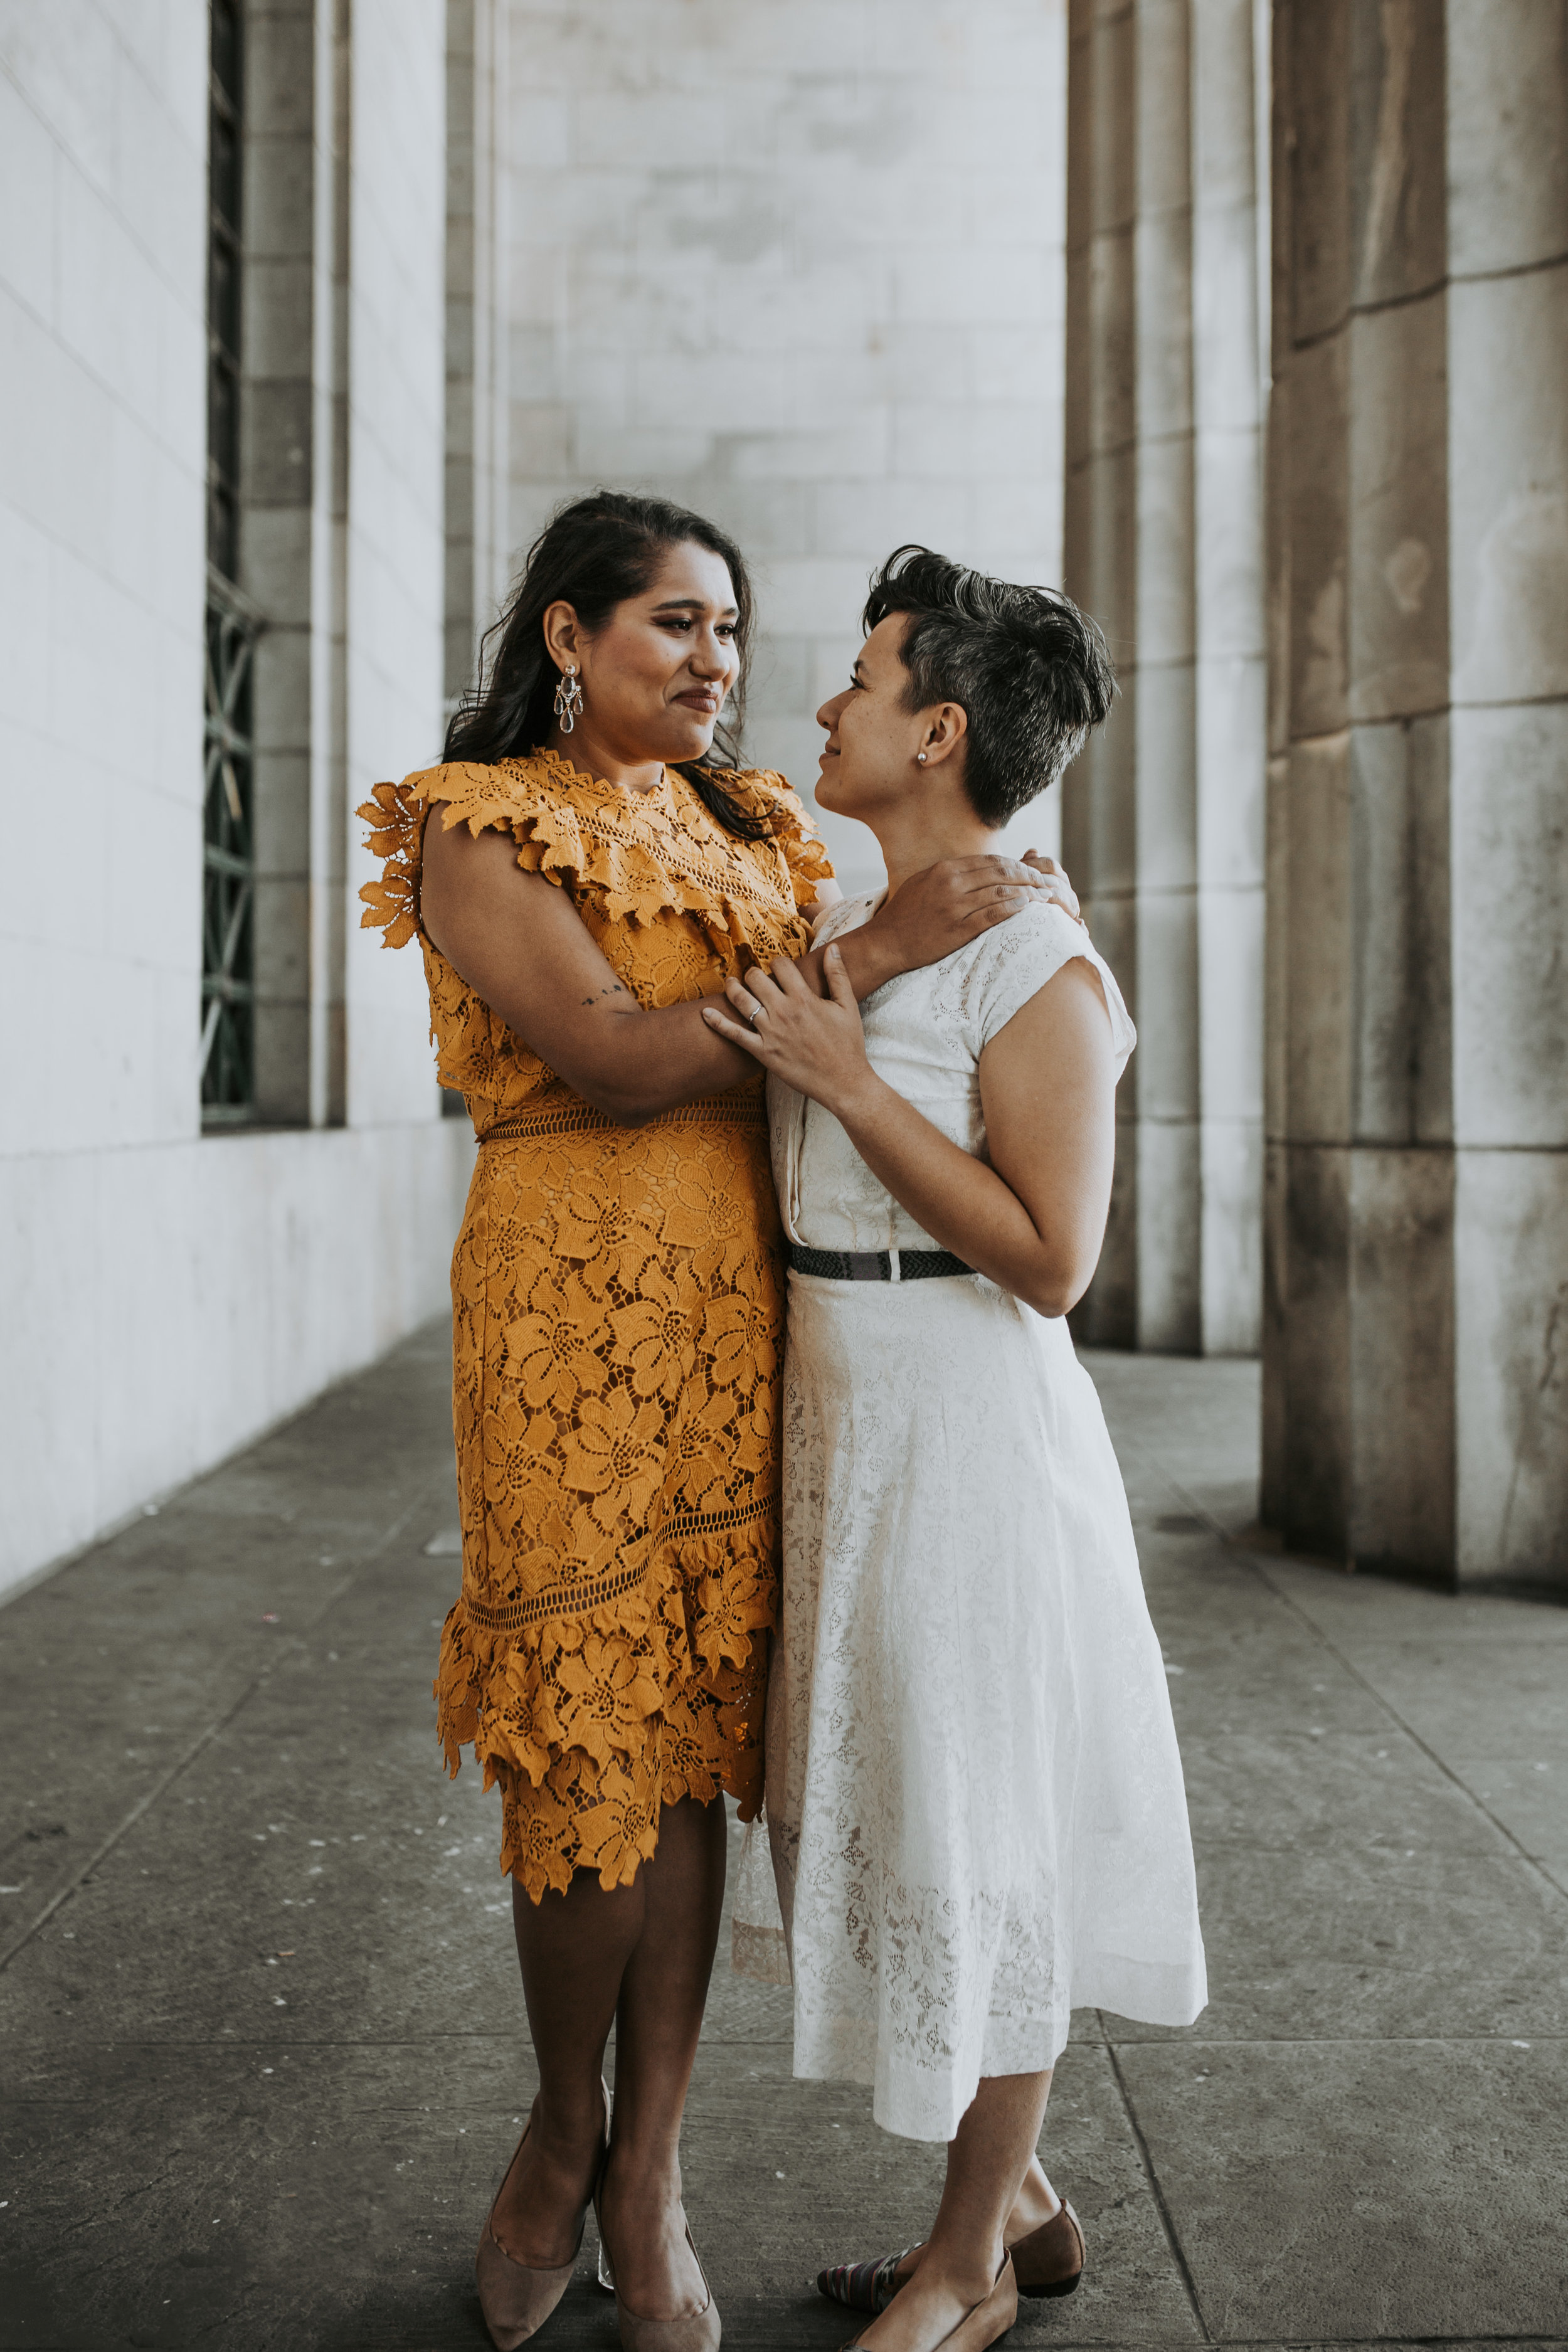 Shannen&Nadia_Buenos Aires_19June2019_(c)FeliciaLimPhotography_22.jpg